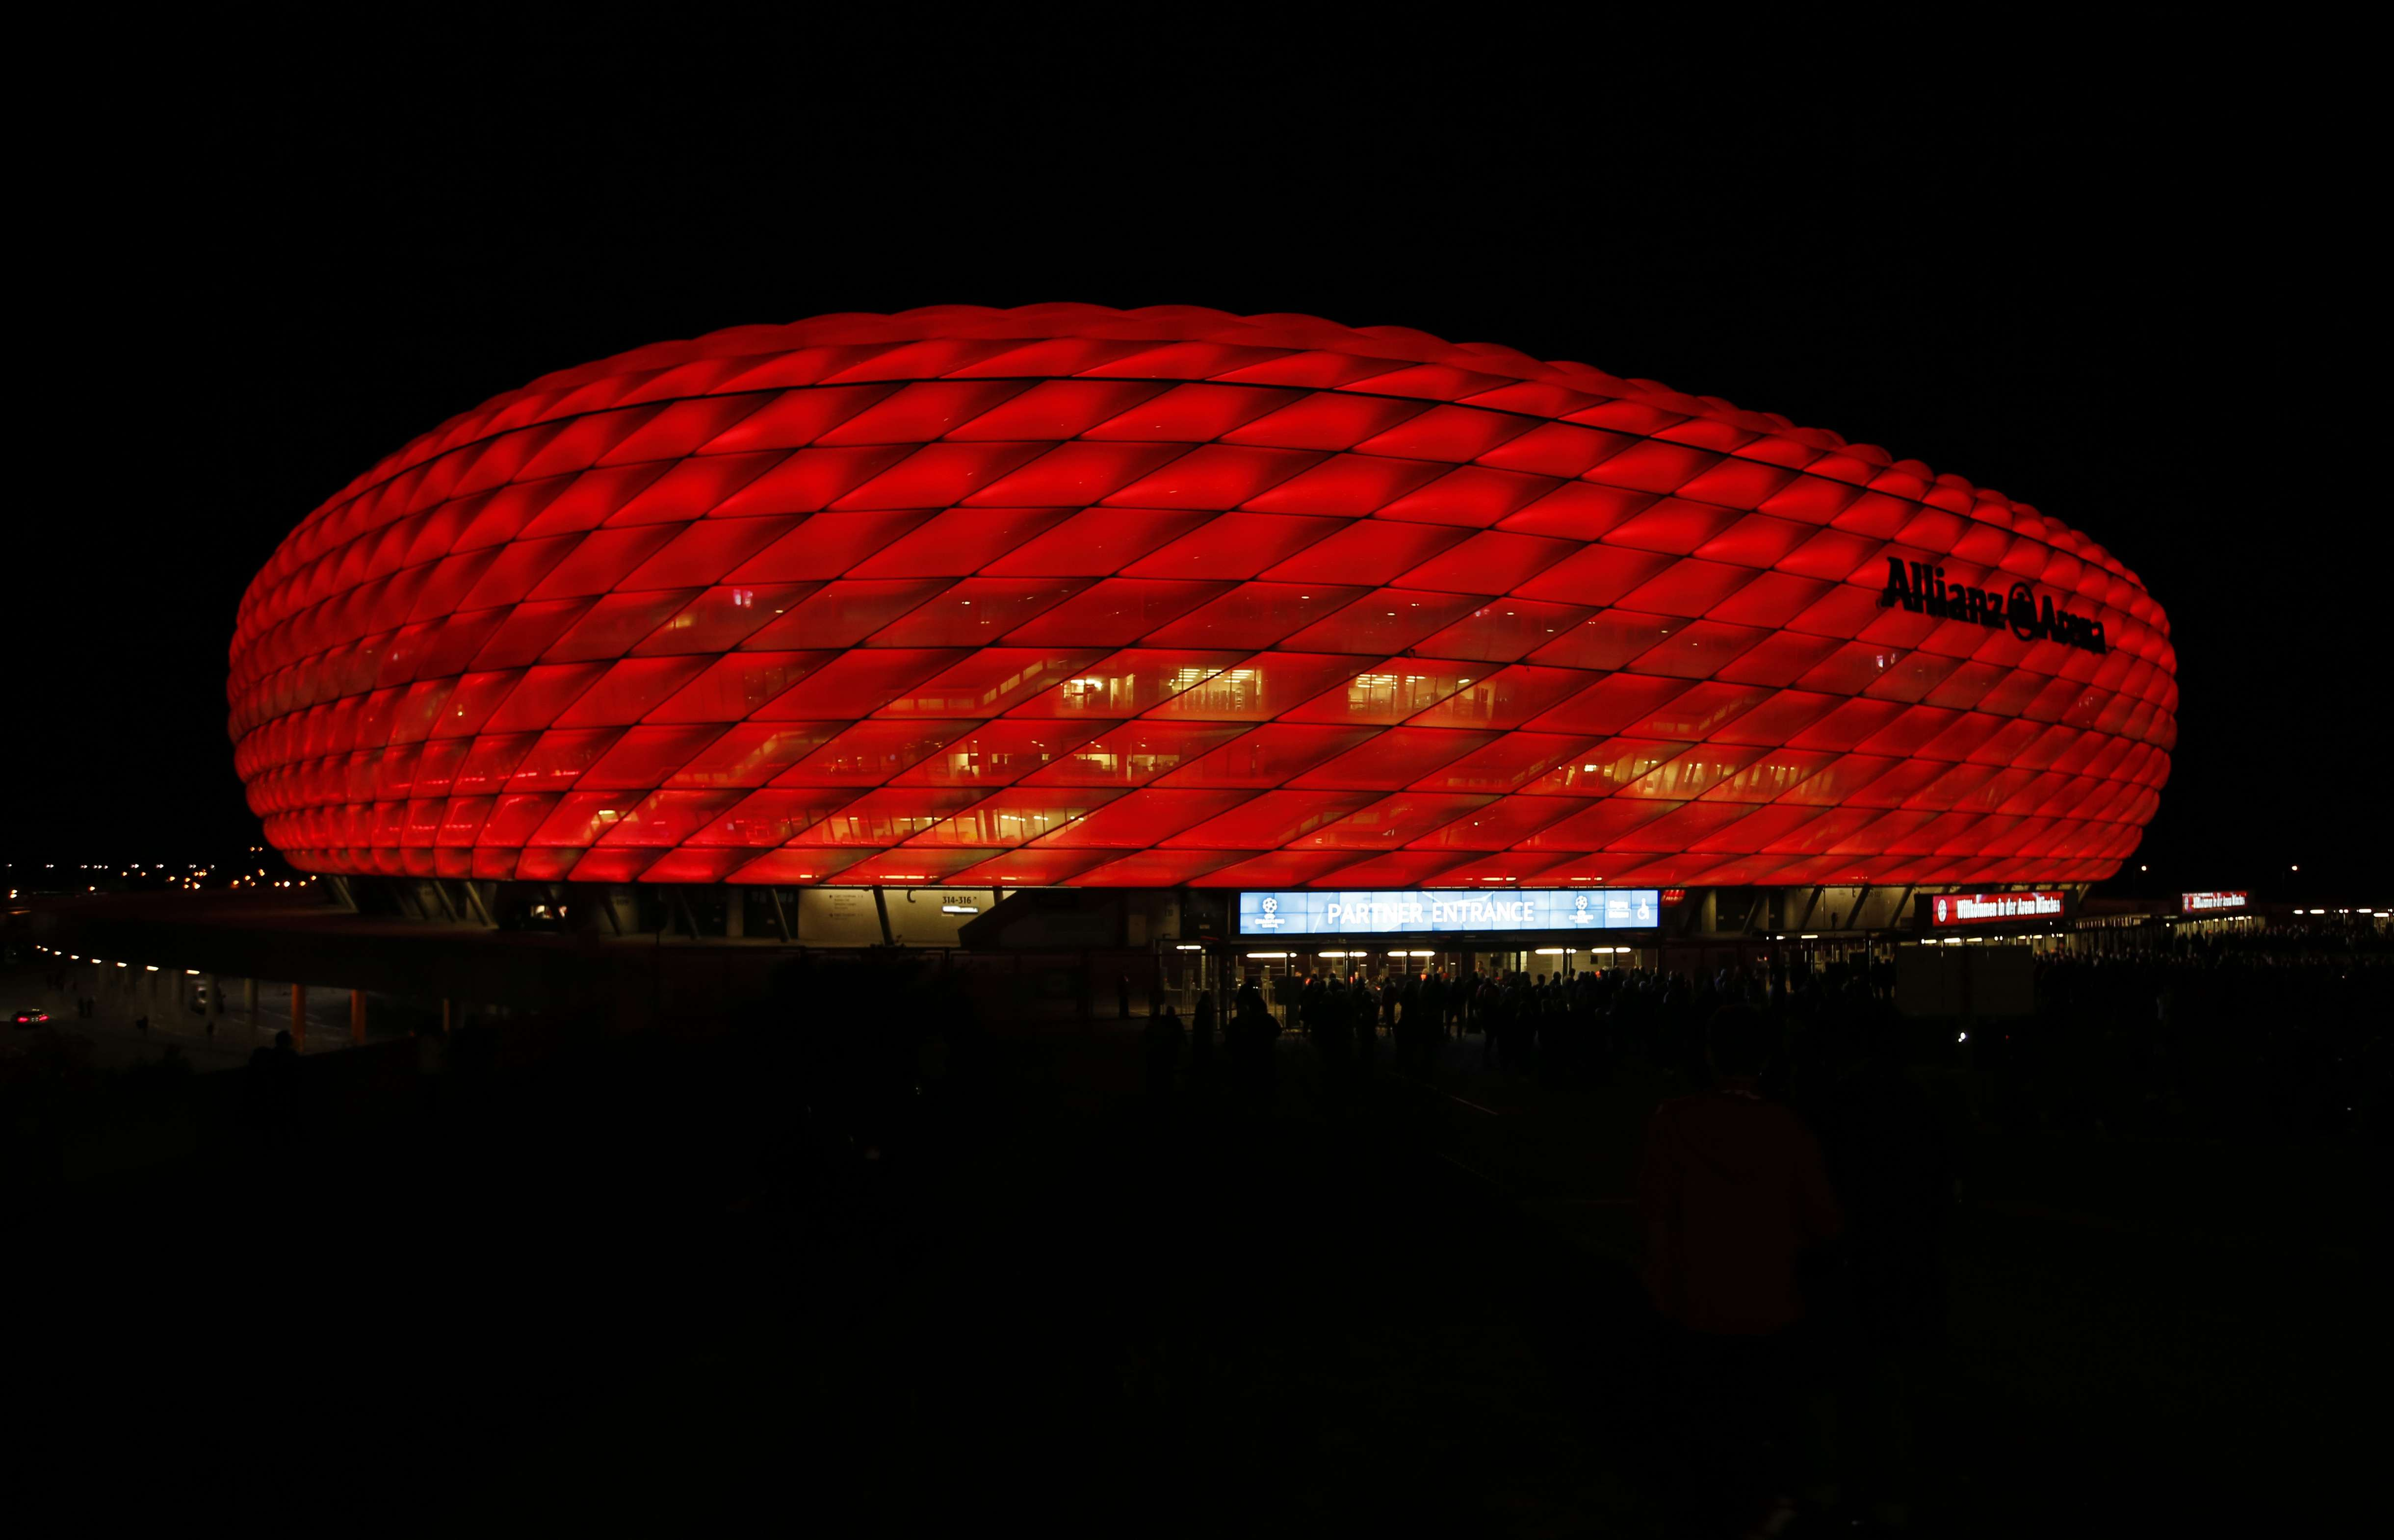 3d Server Wallpaper Fc Bayern Munich Set To Revolutionise Fan Engagement